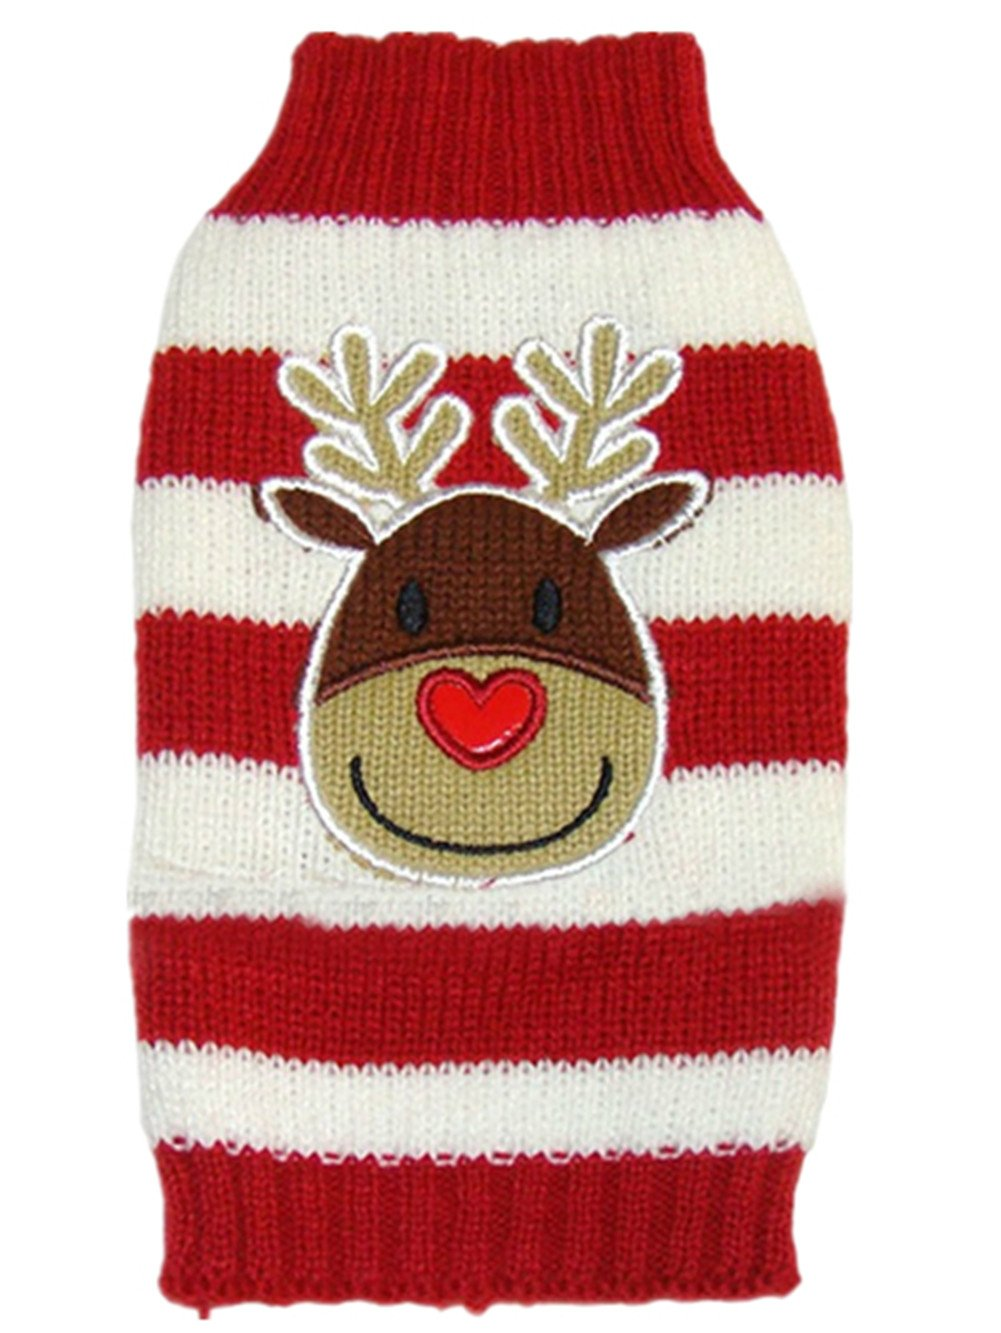 Moolecole Cute Reindeer Pet Dog Christmas Knitted Sweater Puppy Cat Winter Sweatshirt Clothes Warm Knitwear Hoodies Red & White S